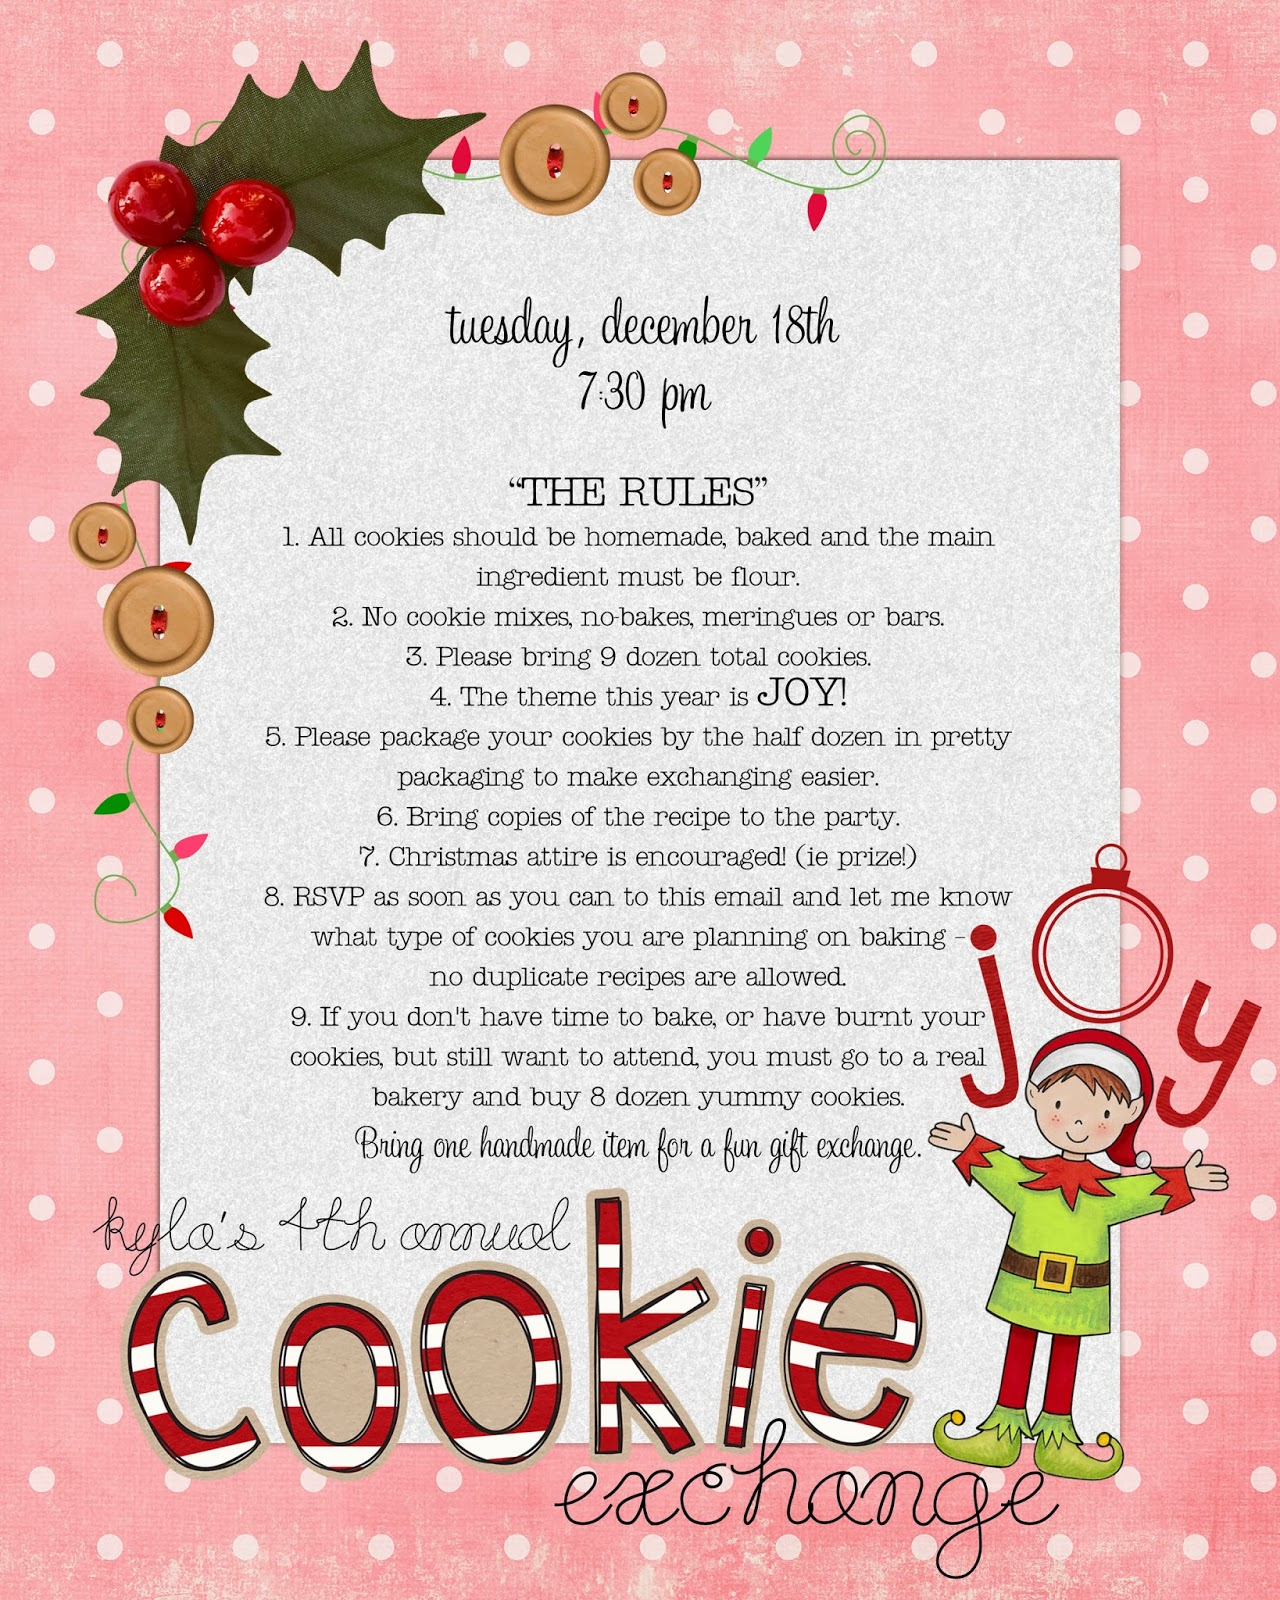 Funky Polkadot Giraffe: Cookie Exchange: Tips and Tricks (Recipe and ...